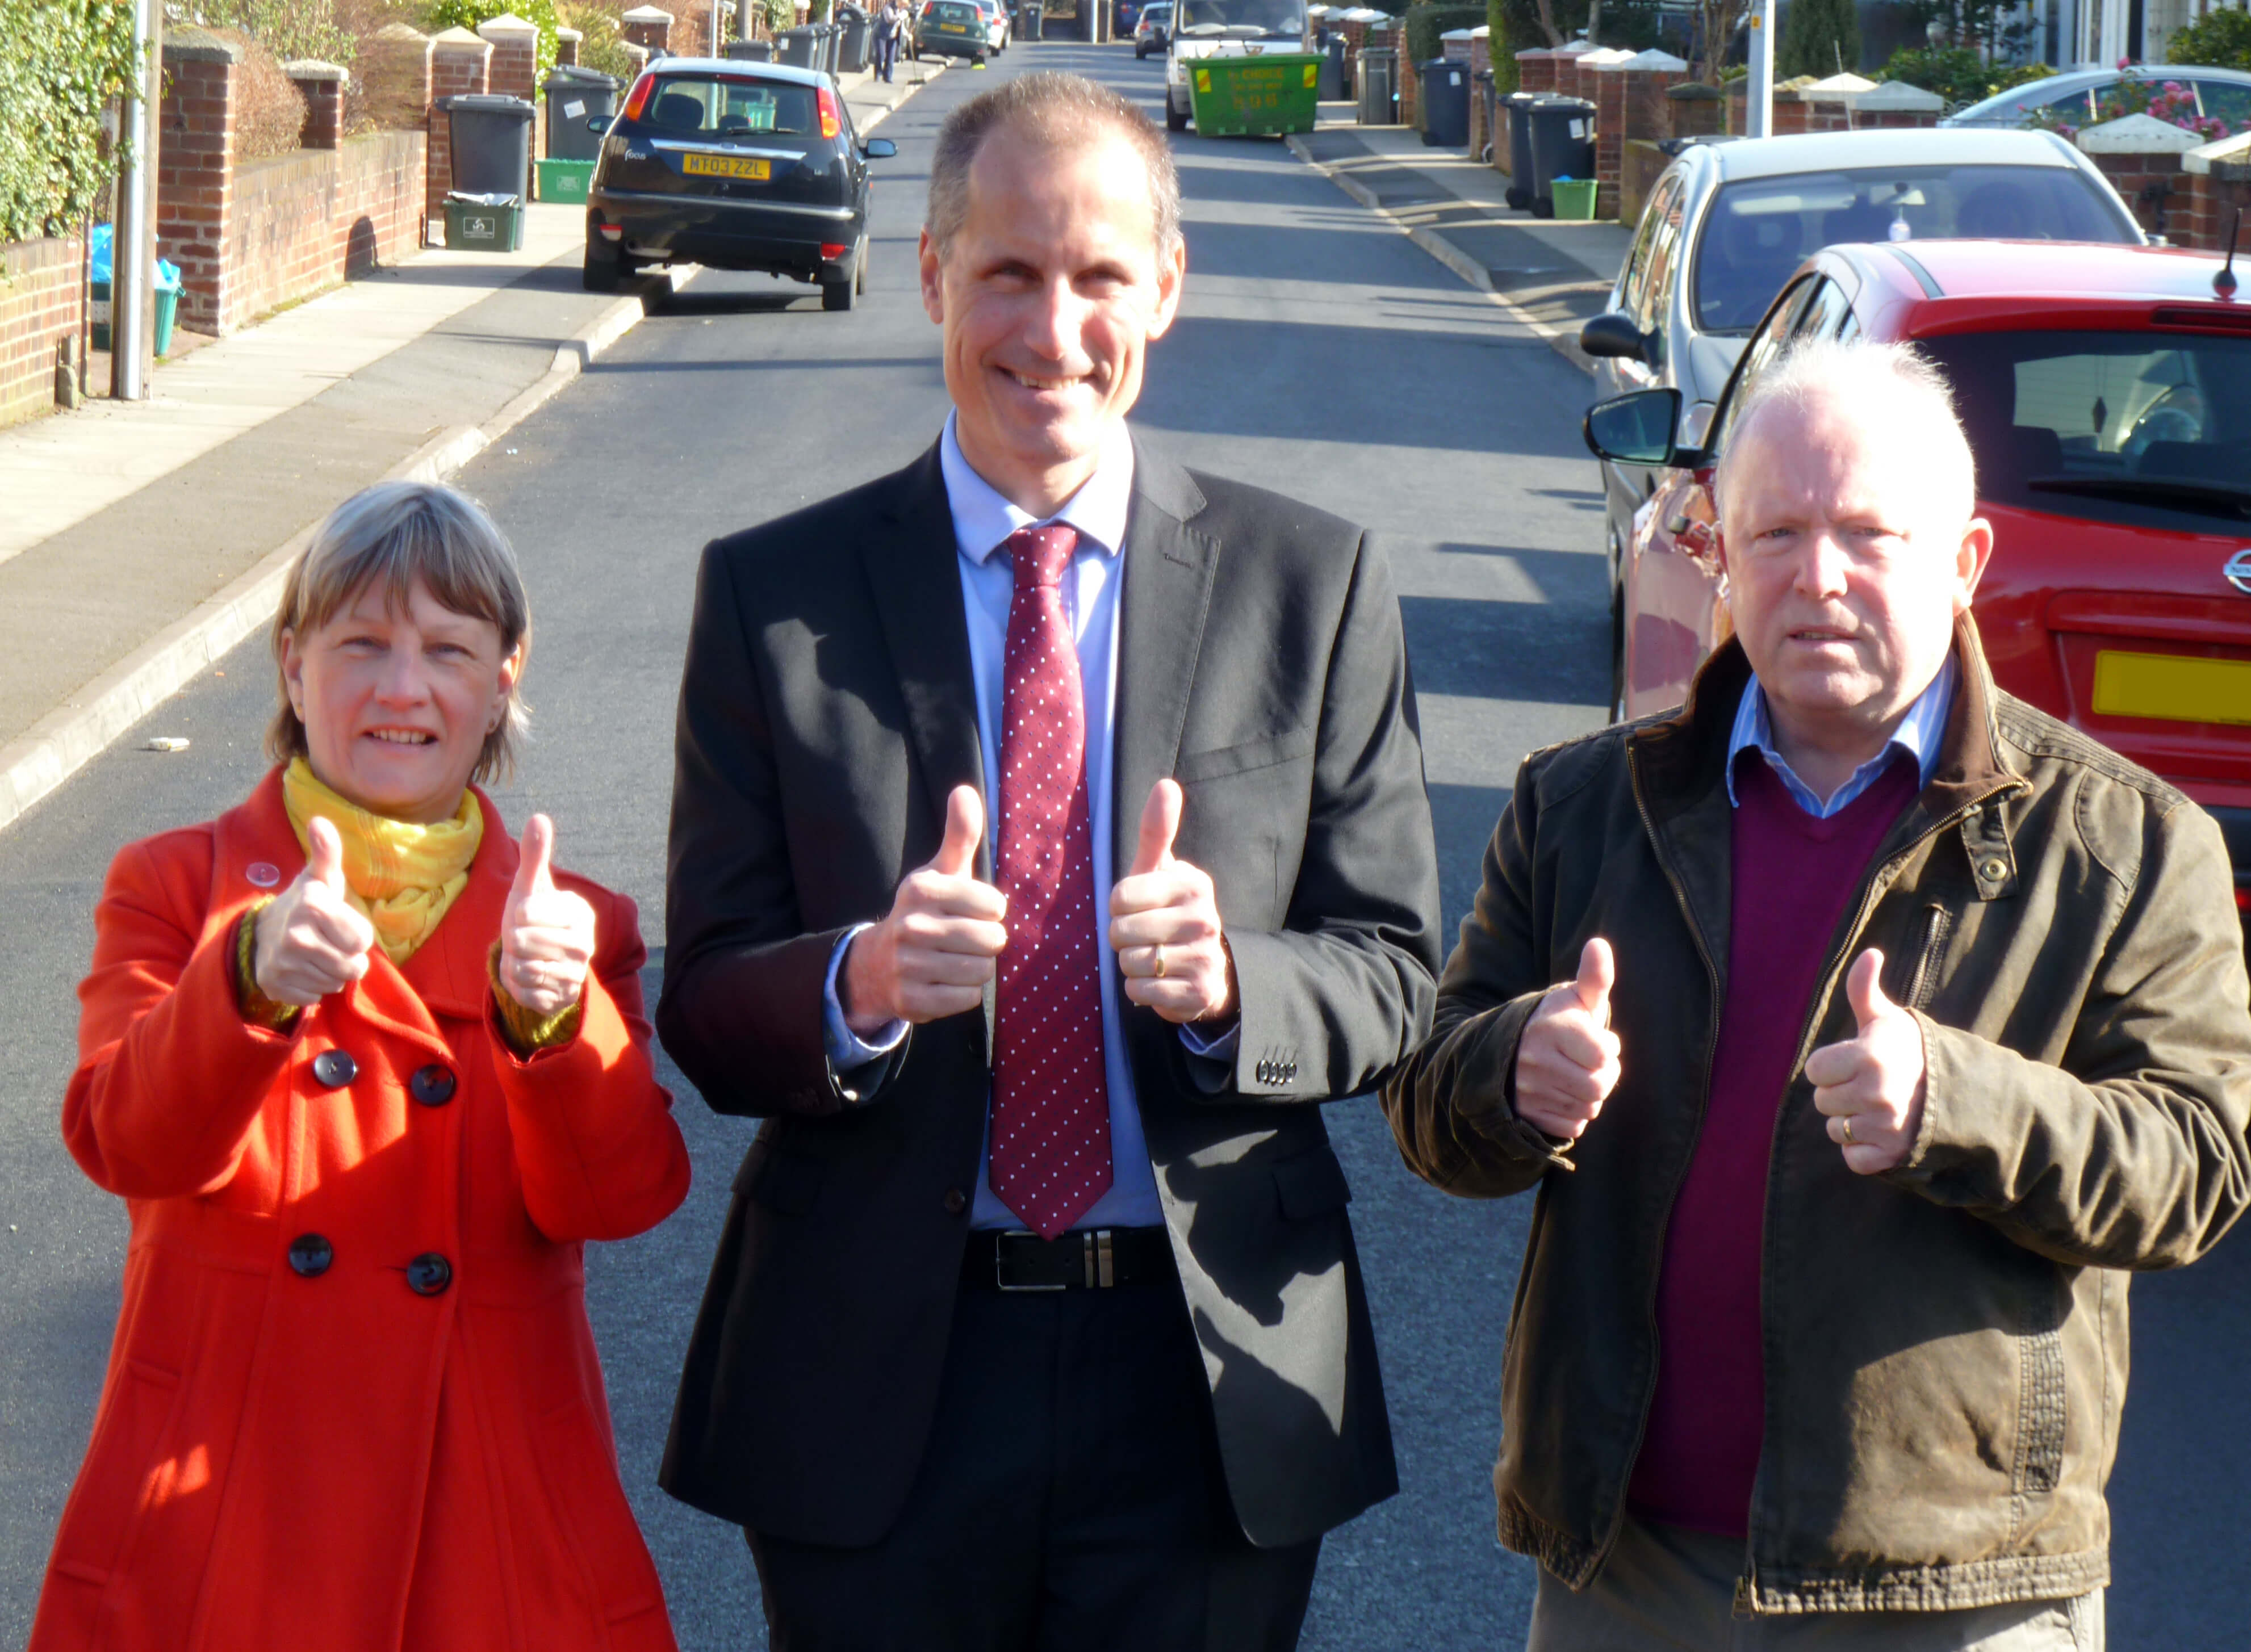 Maghull & Lydiate Labour Action Team's Cllr John Sayers, Cllr June Burns and MP Bill Esterson.